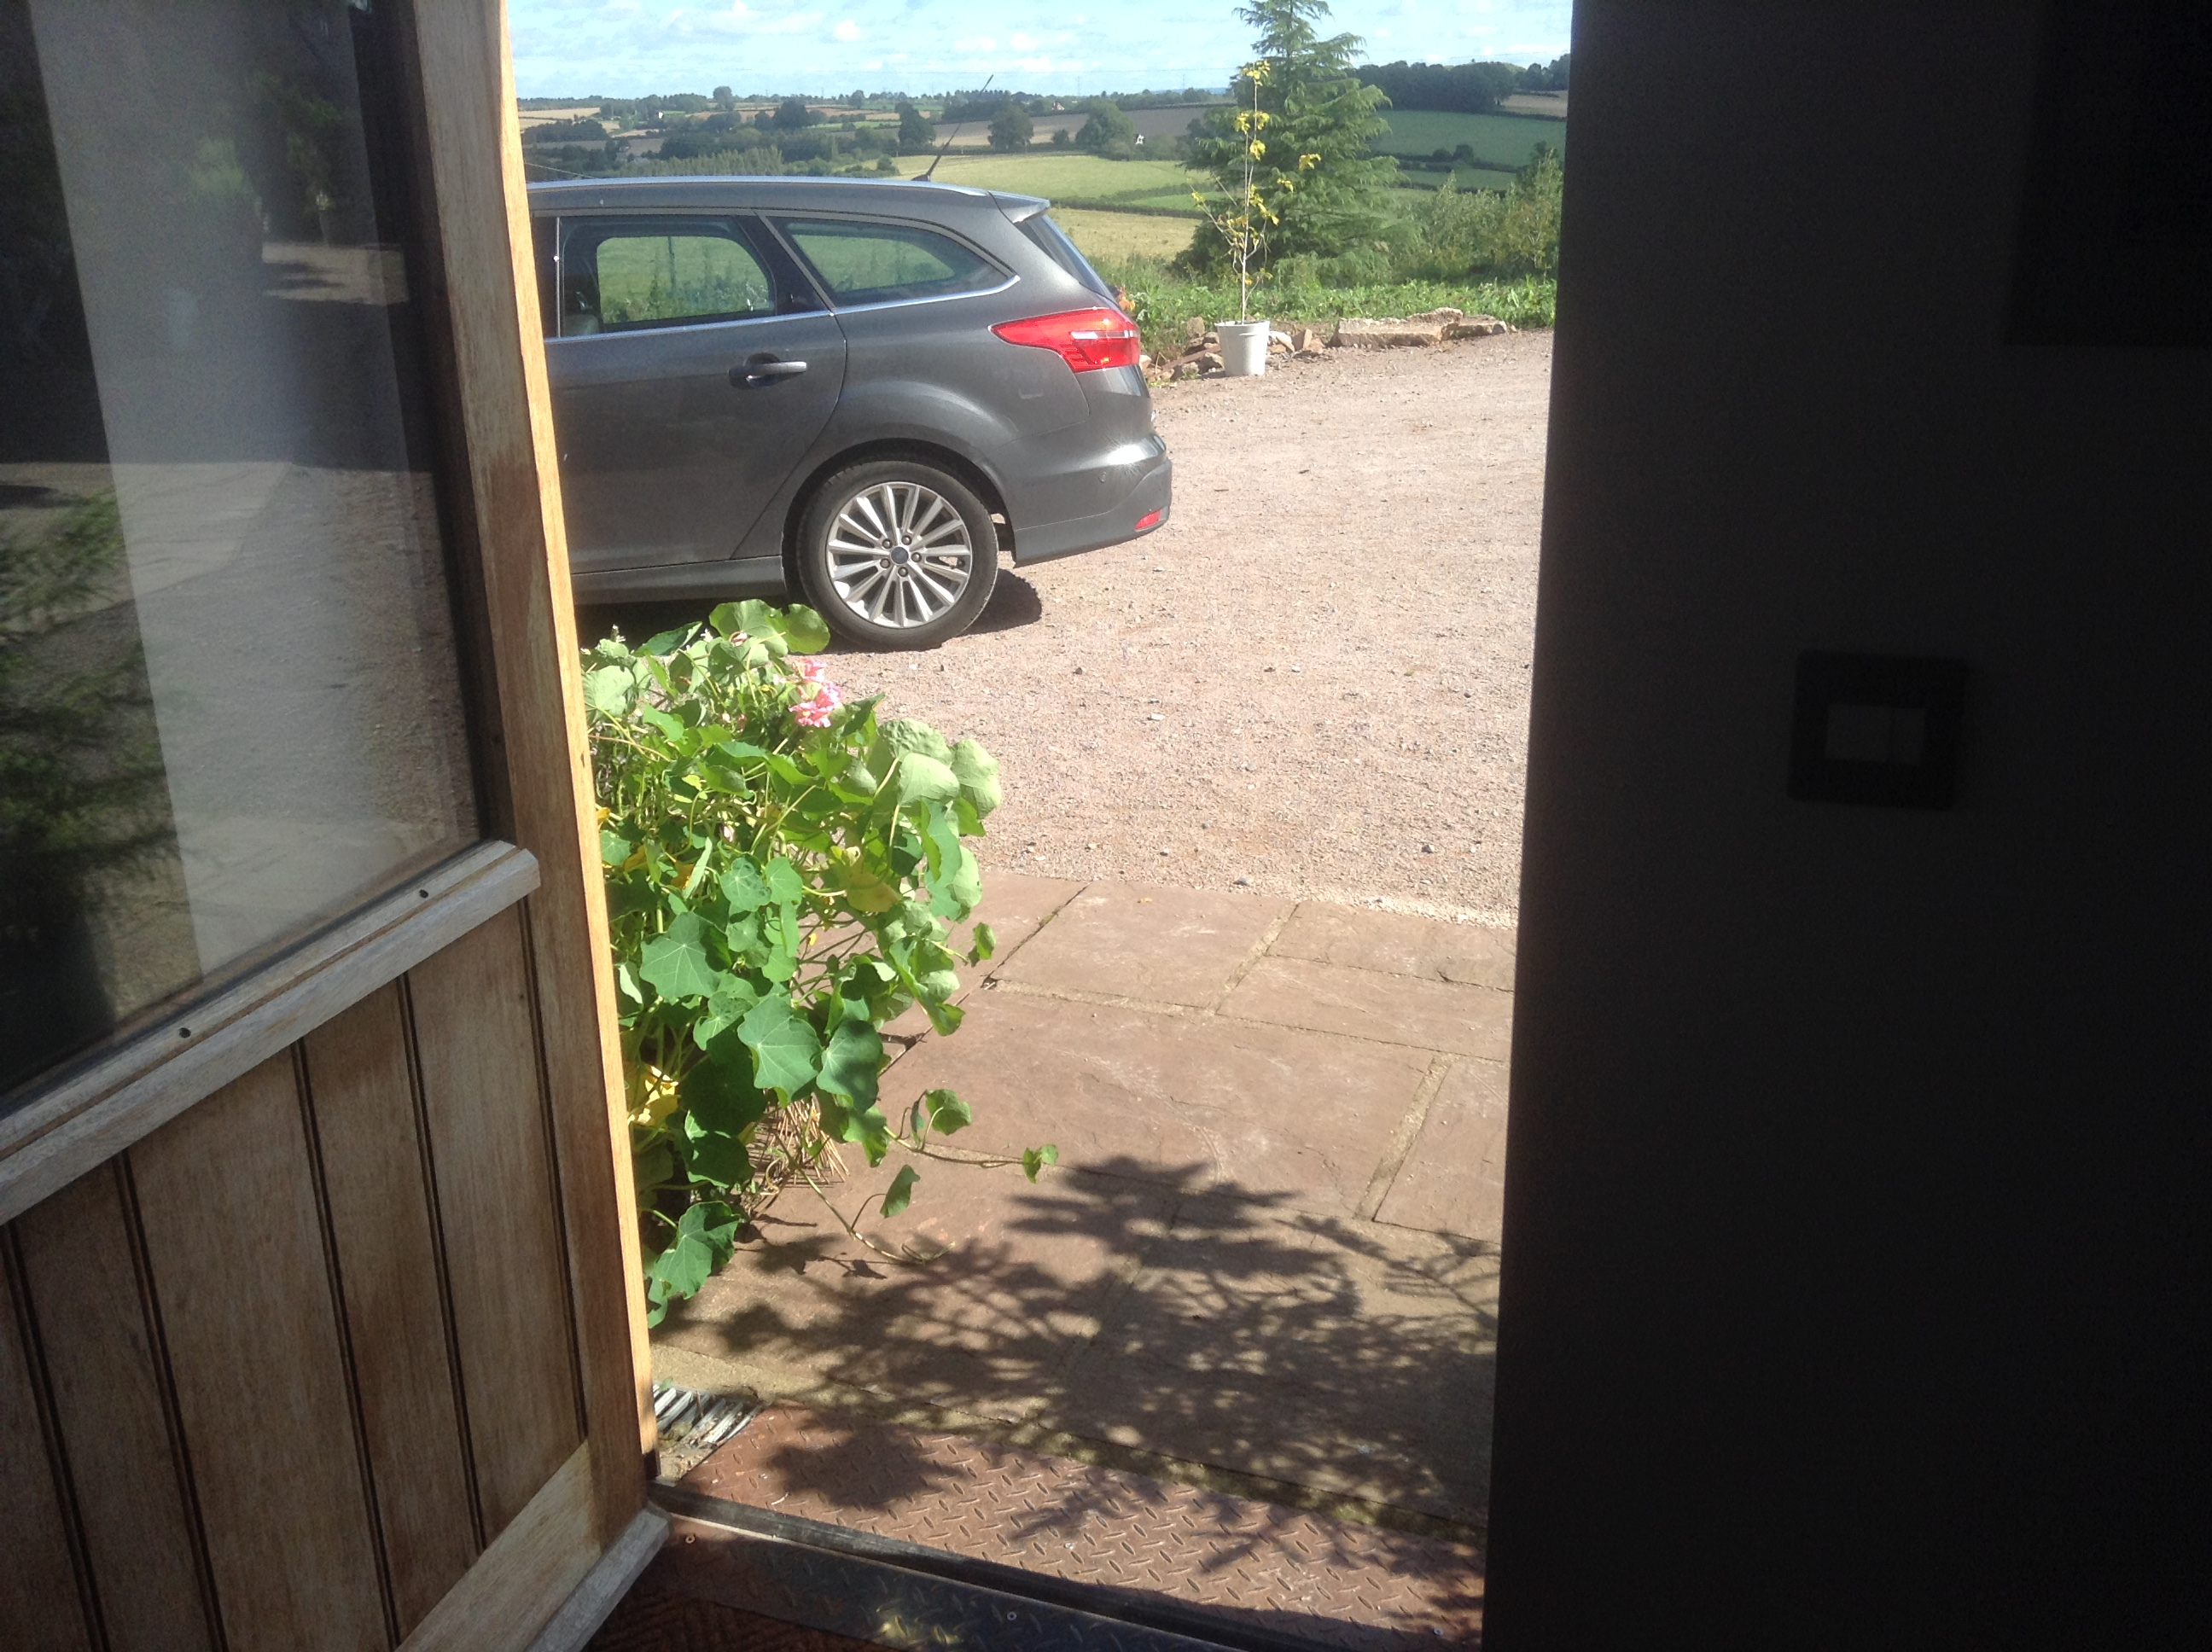 Easy access at Valley View cottage, Llangrove, Herefordhsire